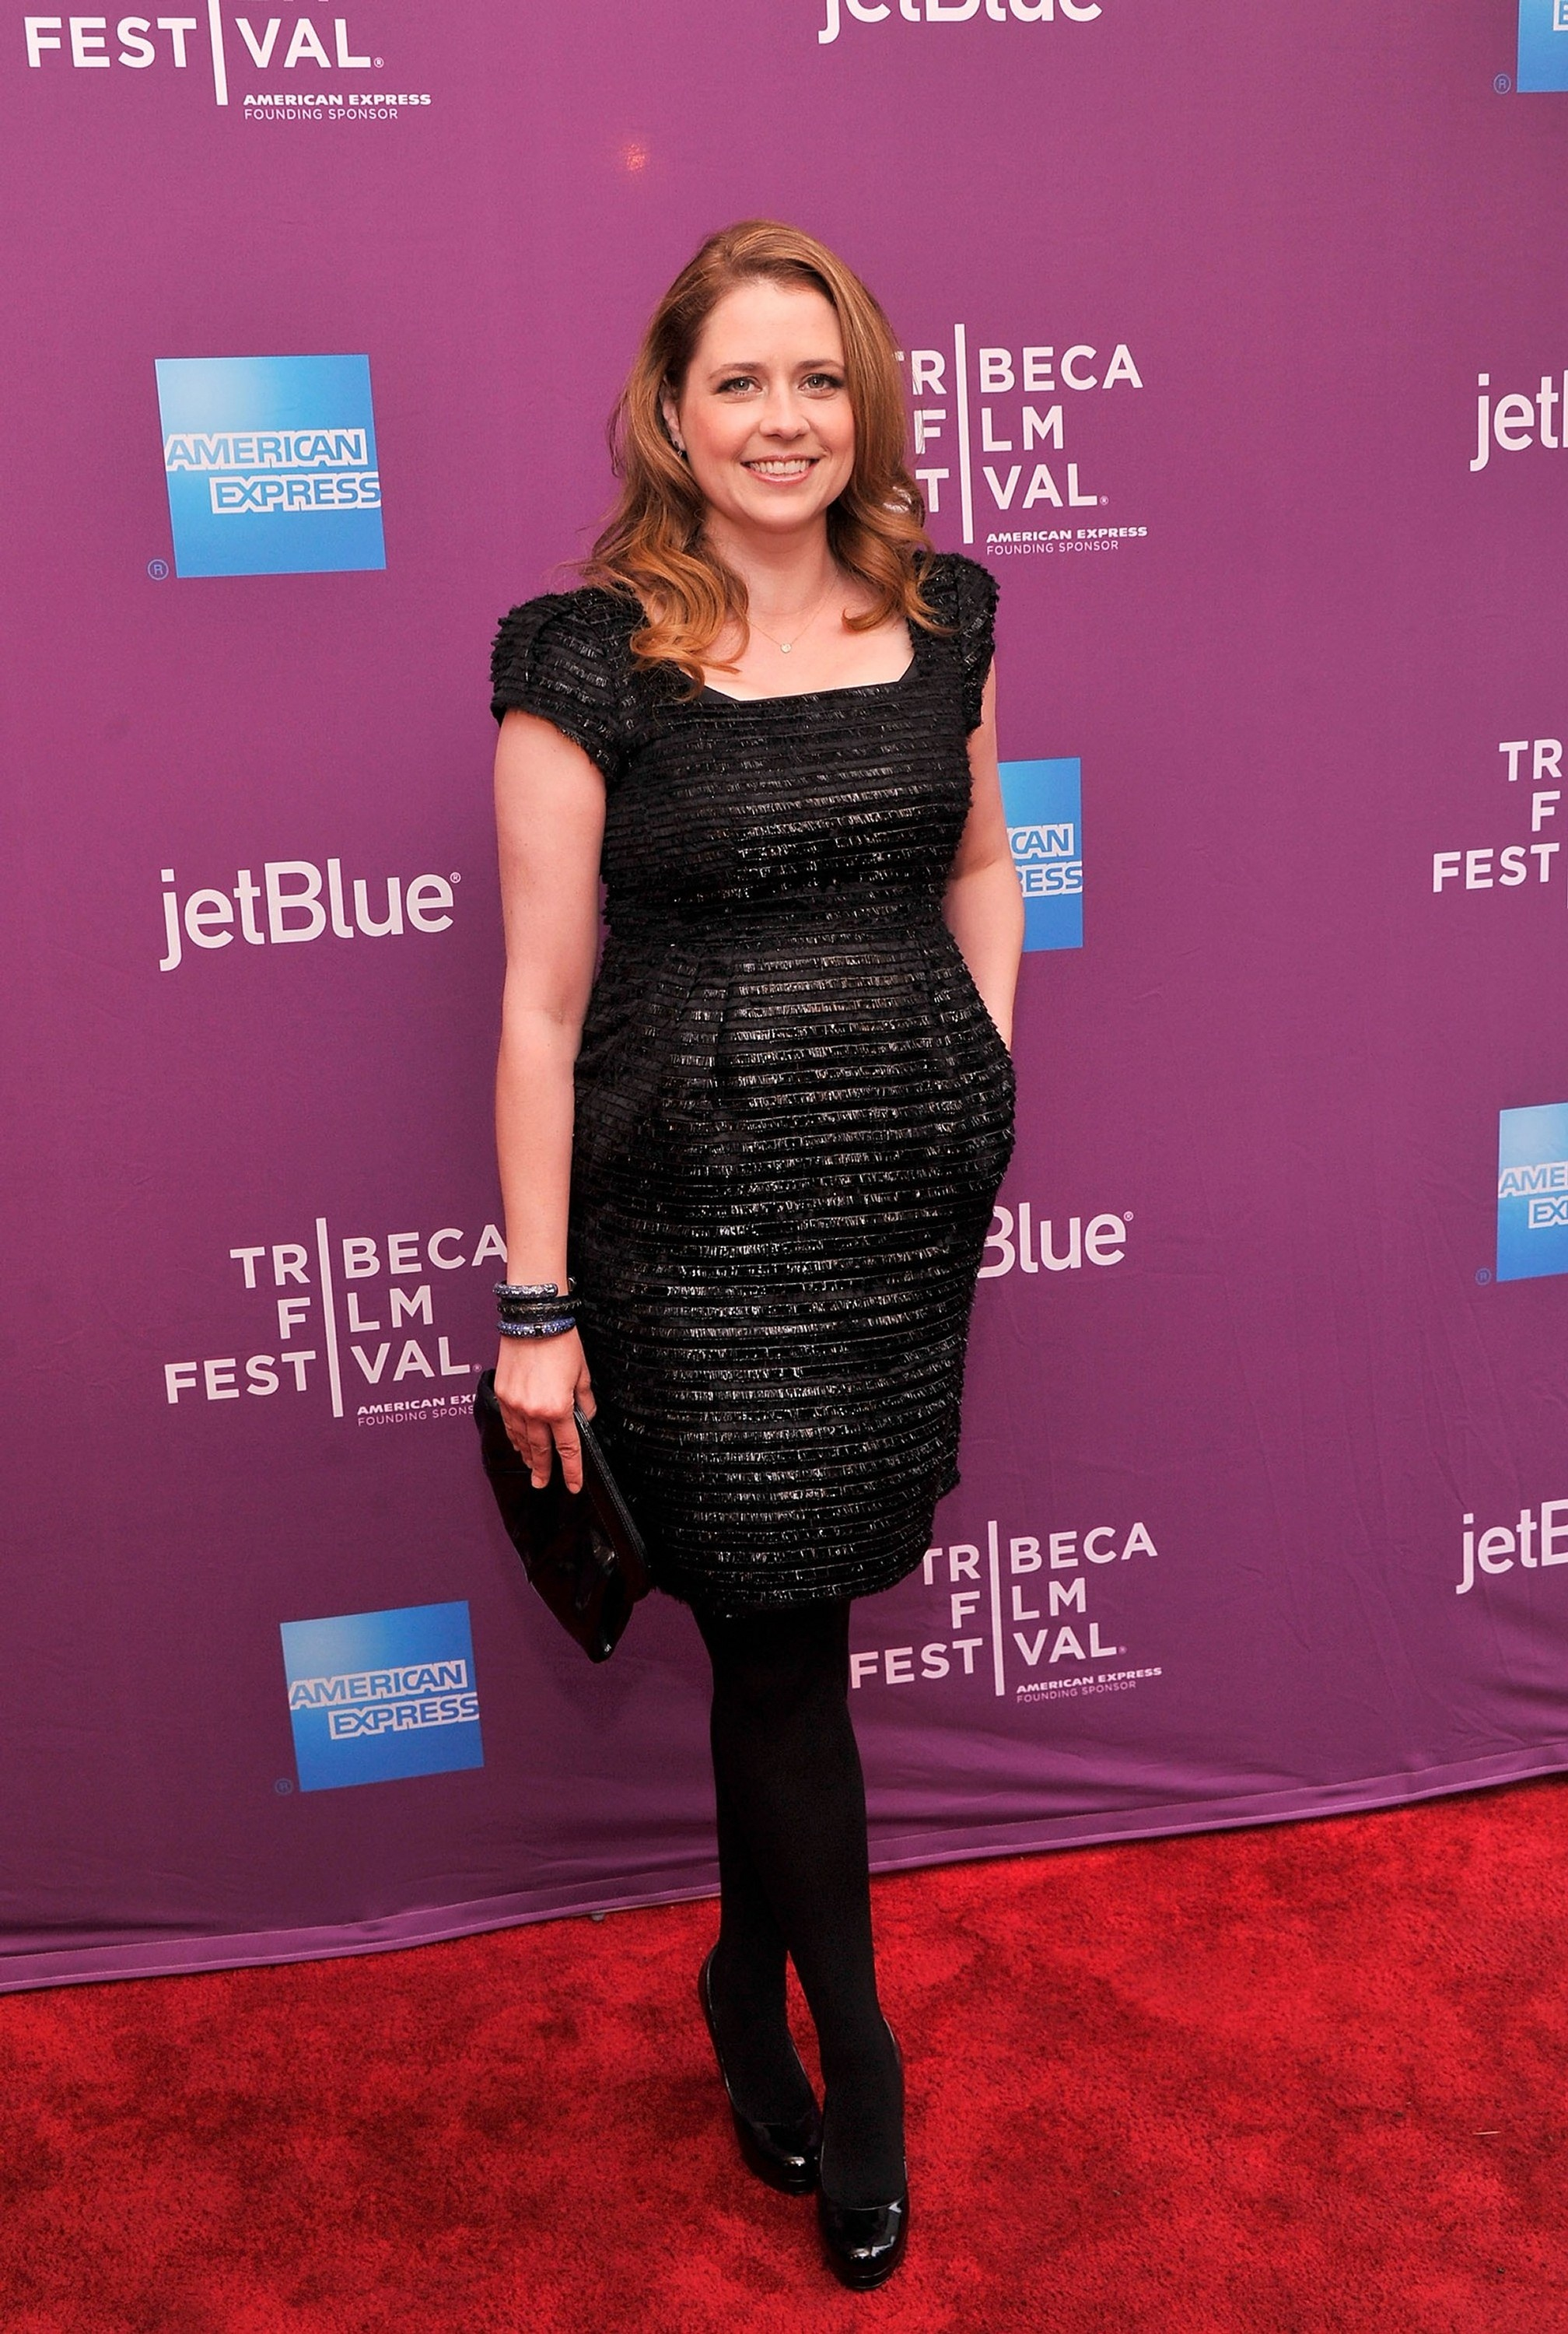 Jenna Fischer photo #380460